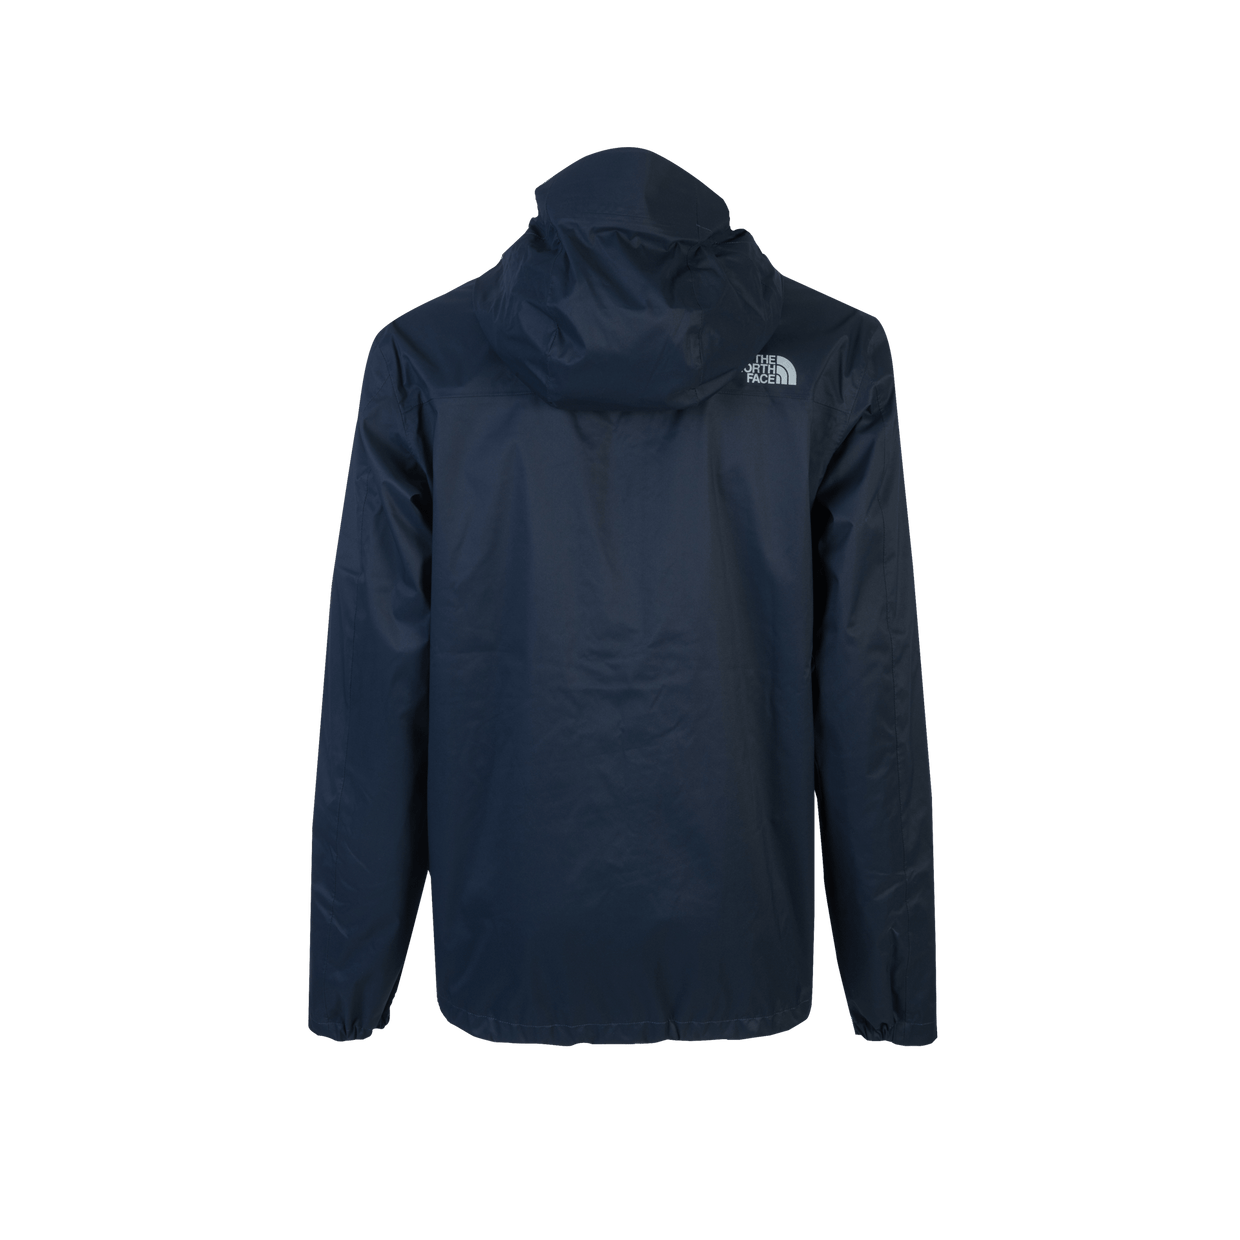 Tanken Zip-In Jacket - Urban Navy